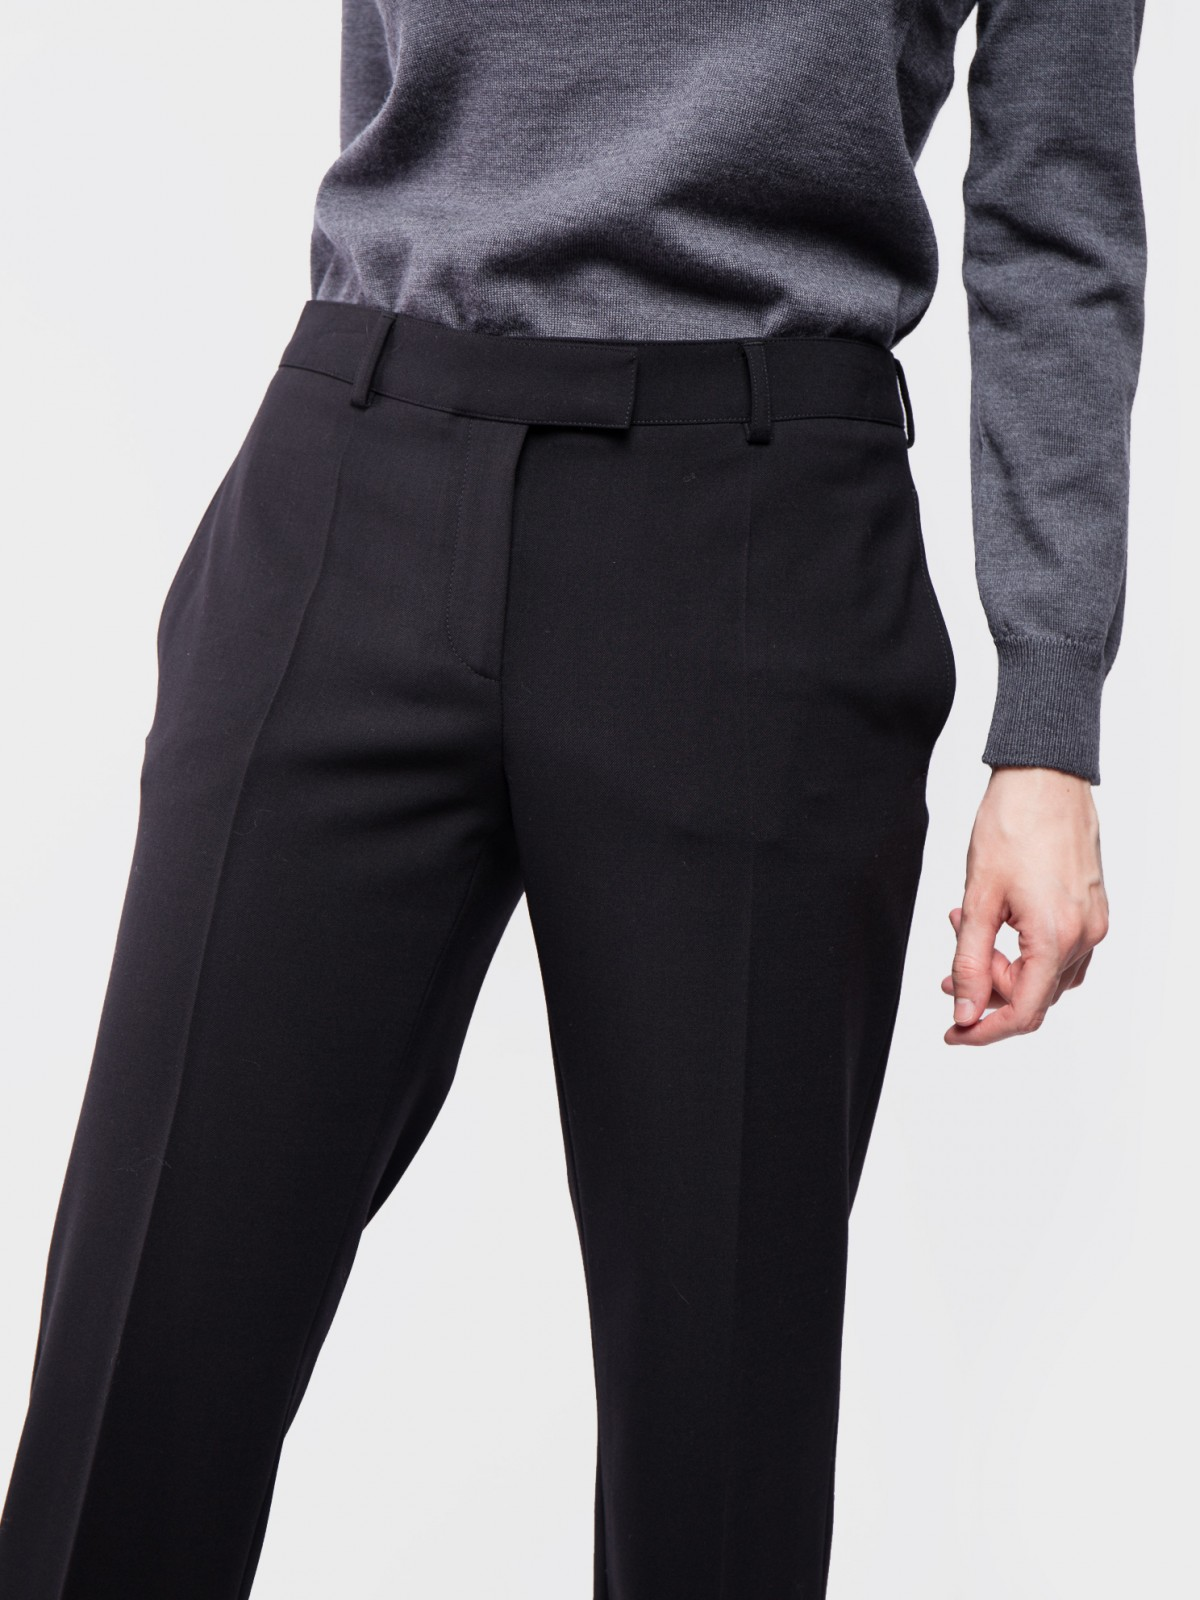 A.P.C. Pantalon Cece in Black